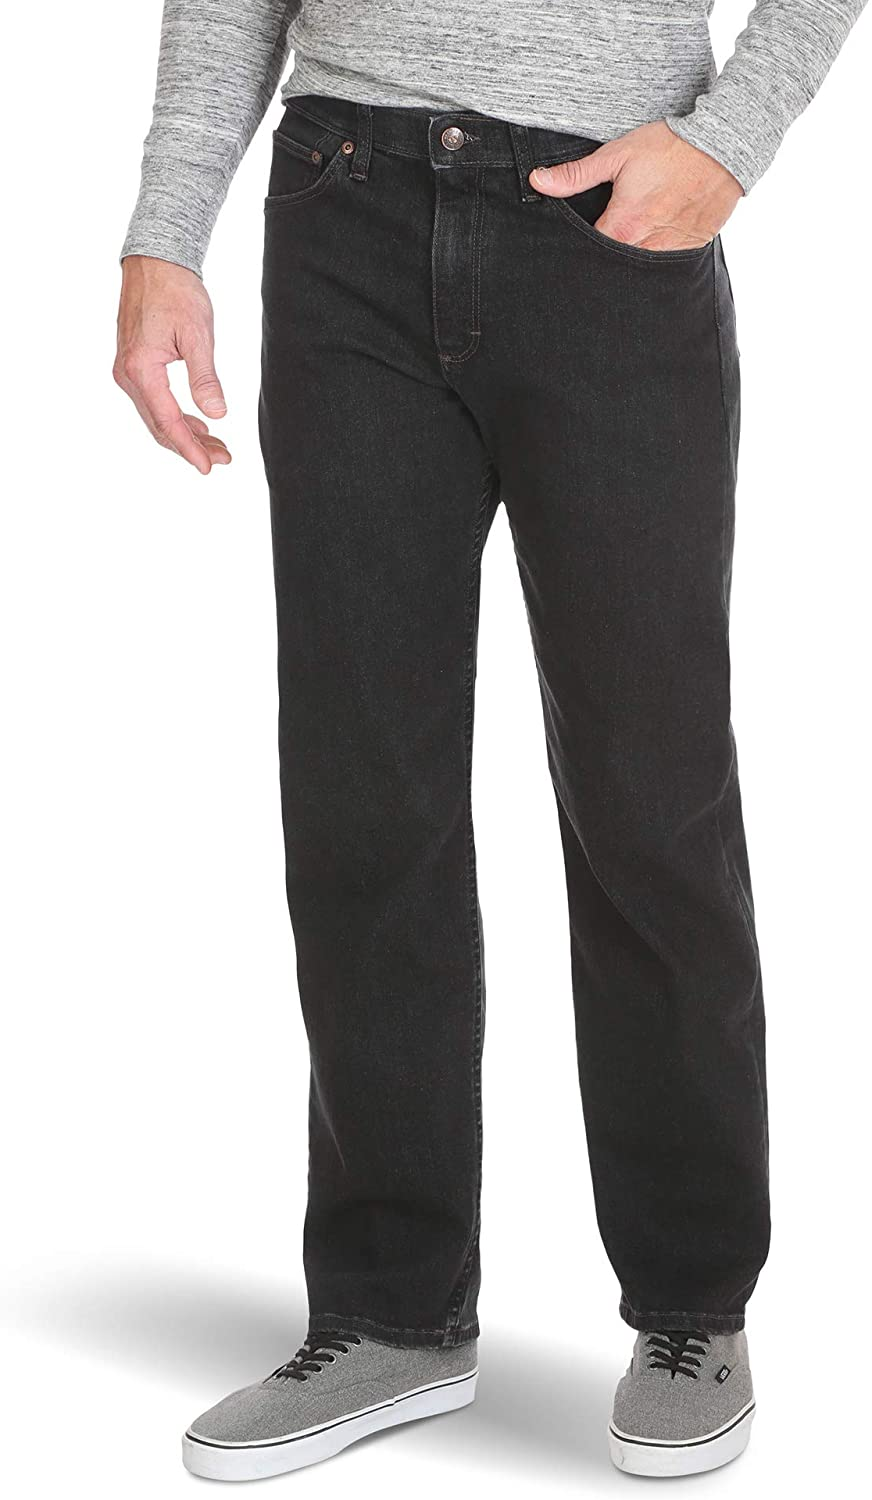 Wrangler Relaxed Fit Jean Dark Hombre